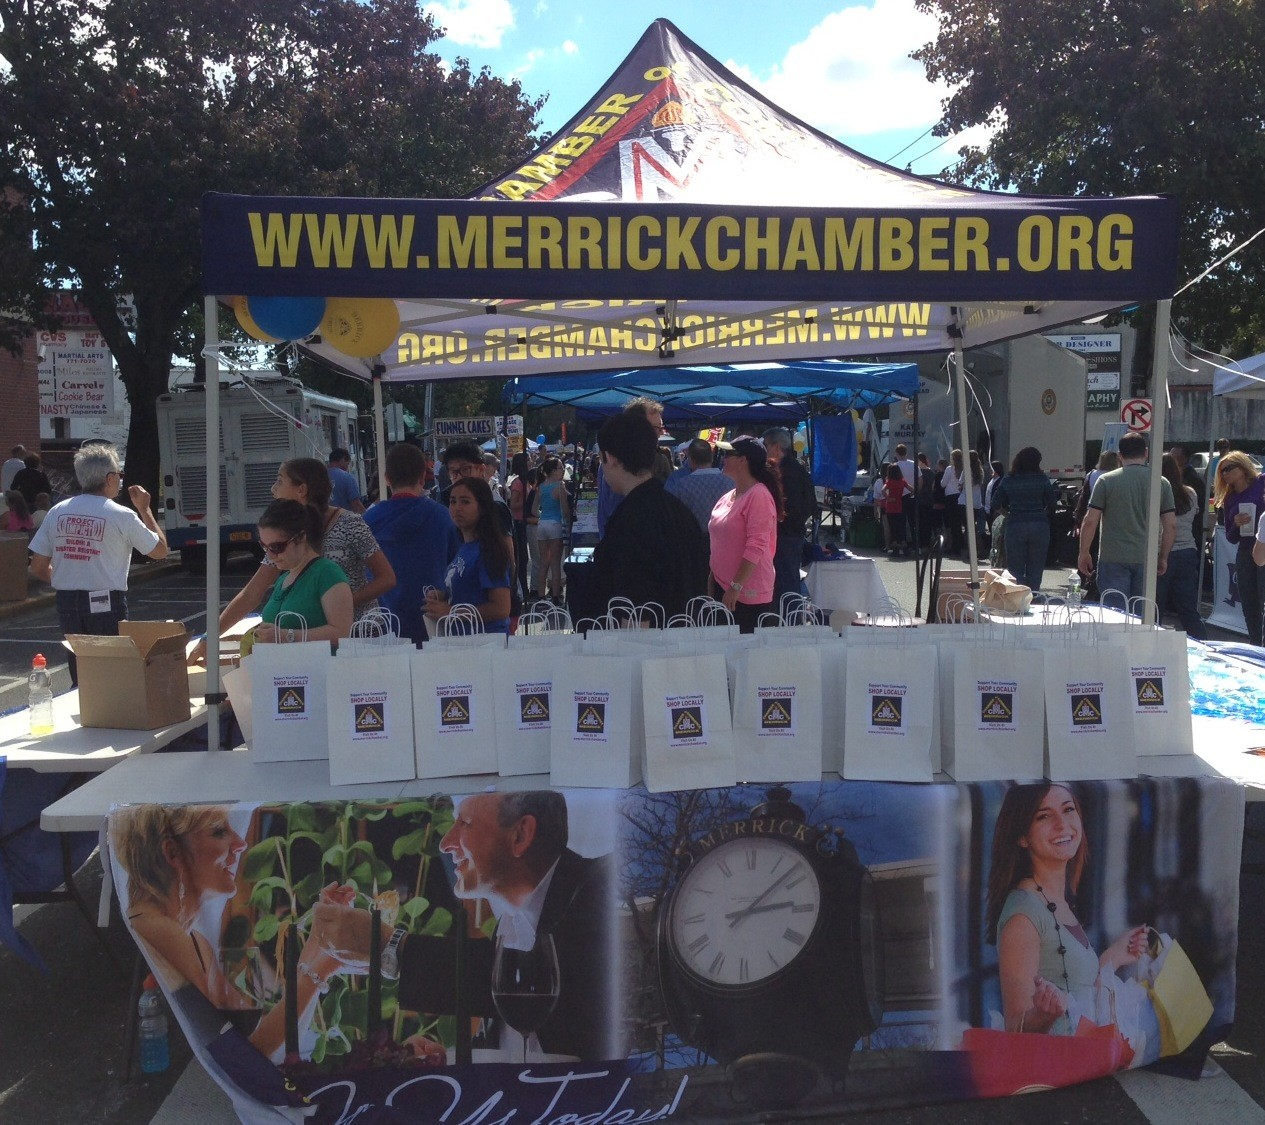 The Merrick Chamber of Commerce handed out a thousands goodie bags with coupons and giveaways from local businesses during the fair.